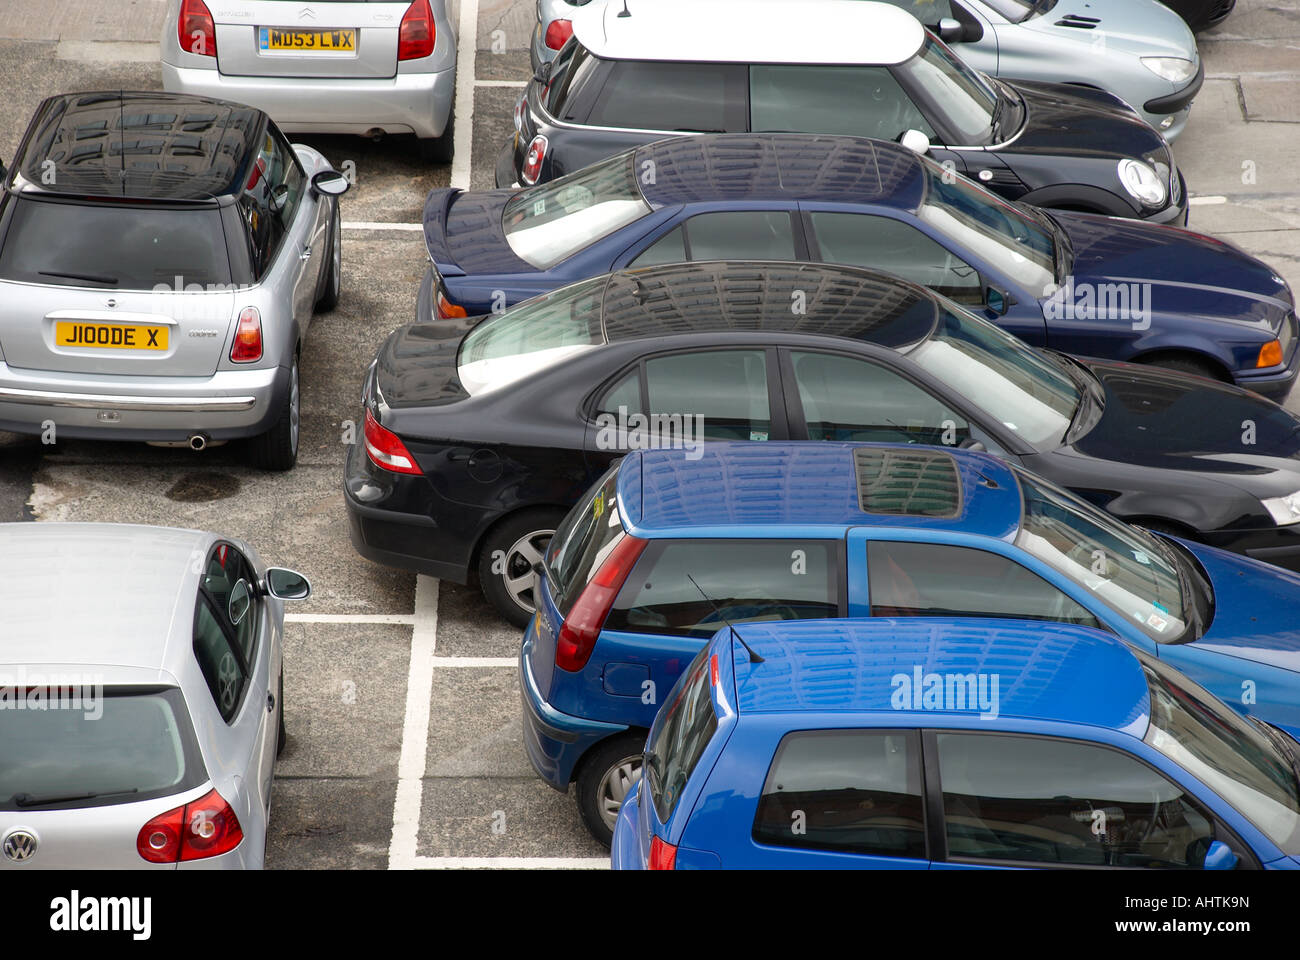 Car Park In Manchester City Centre Stock Photo 14544992 Alamy